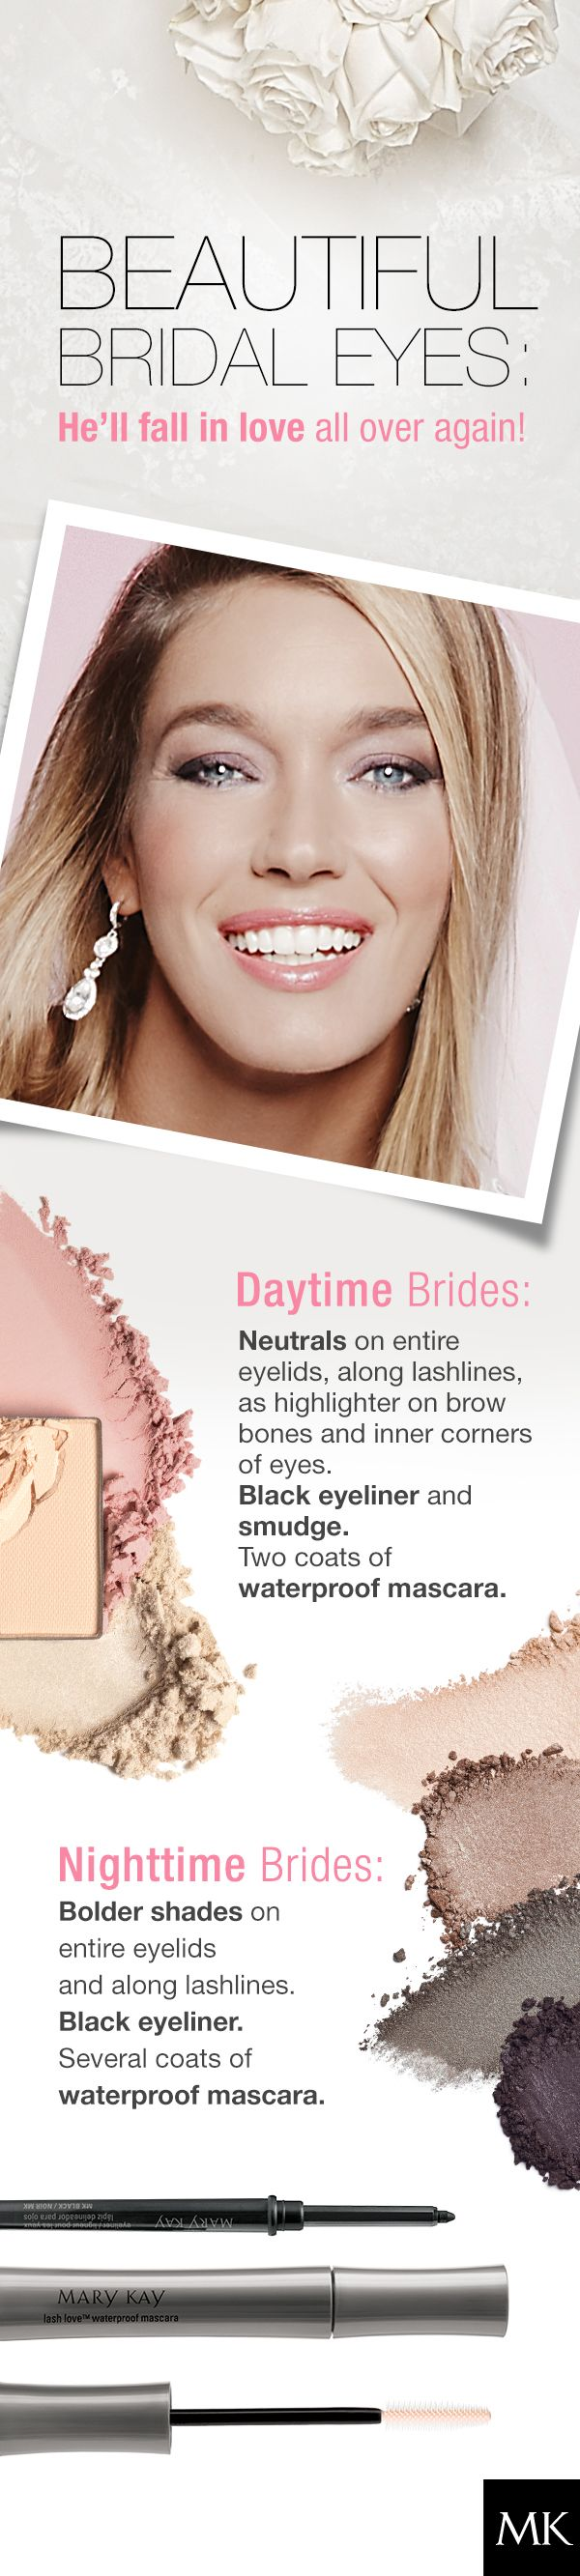 What's your look on your BIG DAY?? Classic...Romantic....Glam?? Check out our e-catalog exclusively featuring everything bridal!! www.marykay.com/tmaier1